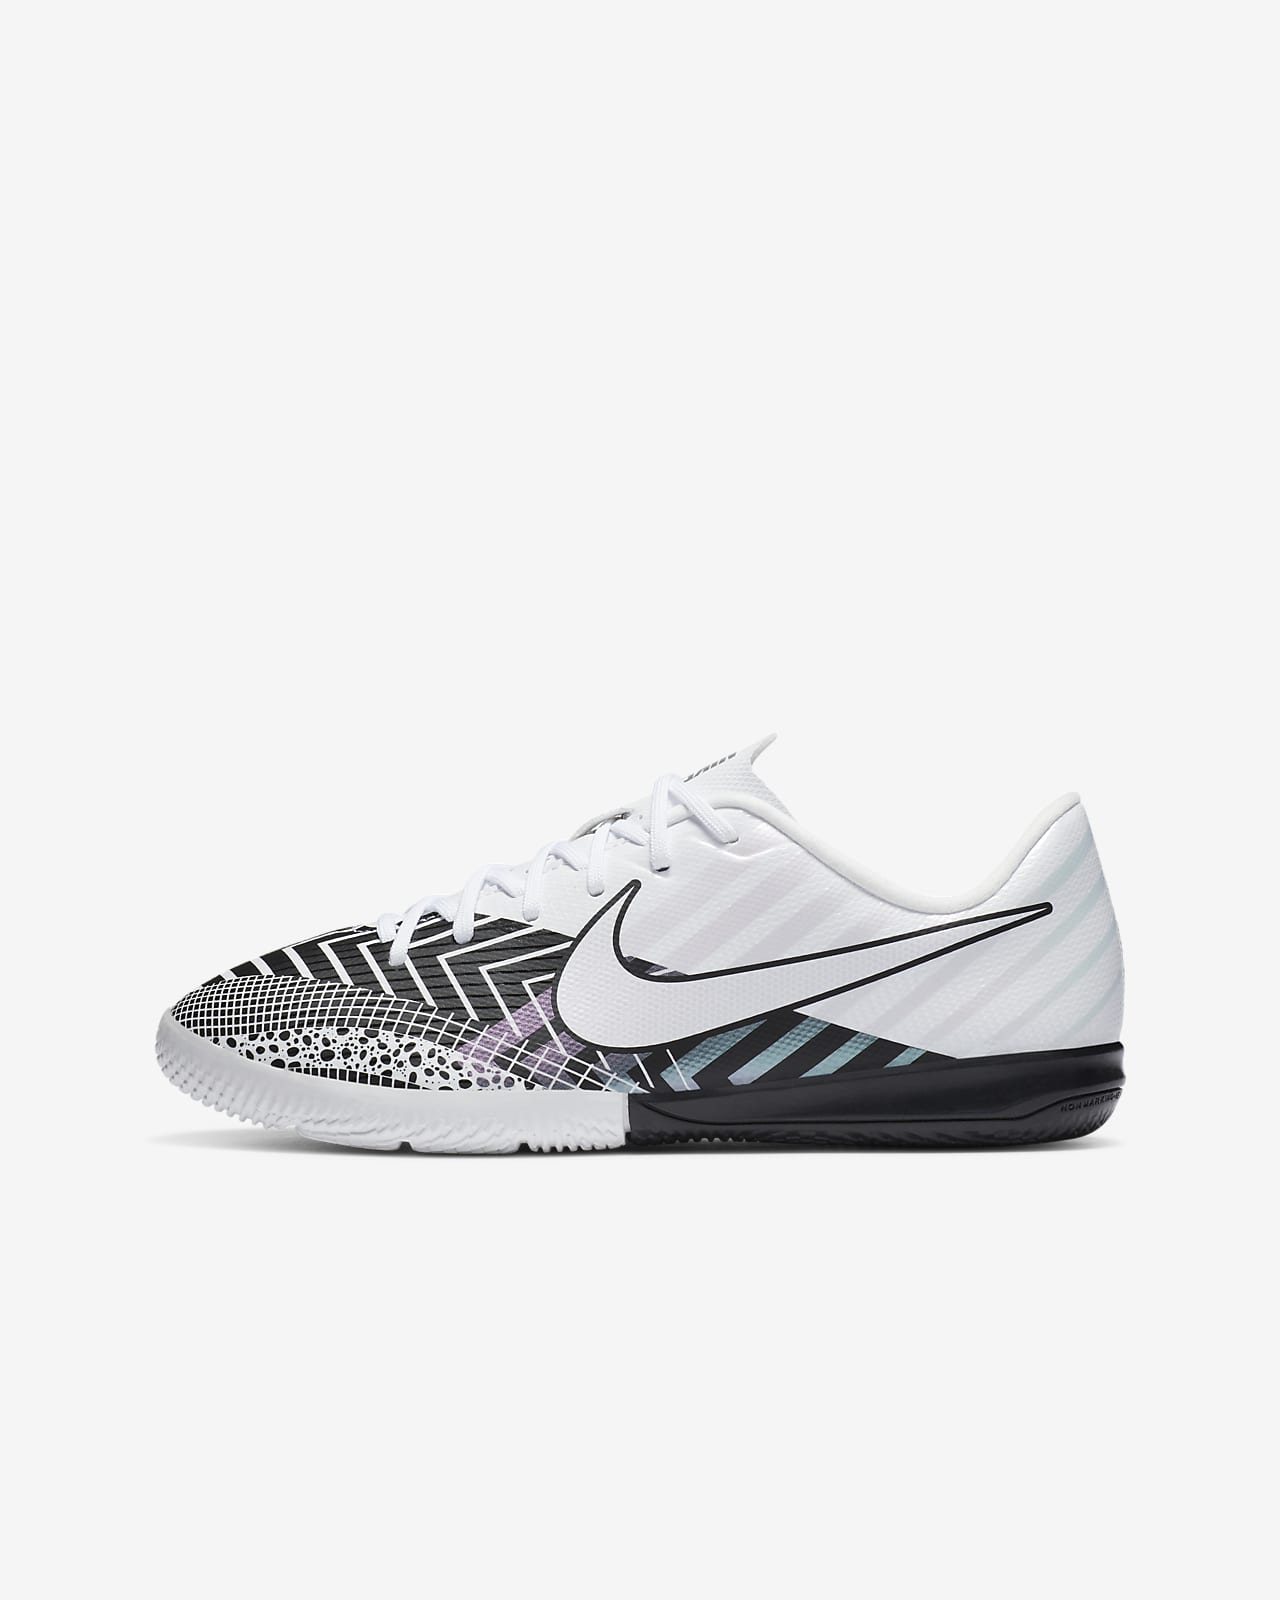 Insustituible ropa interior Residente  Nike Jr. Mercurial Vapor 13 Academy MDS IC Little/Big Kids' Indoor/Court  Soccer Shoe. Nike.com